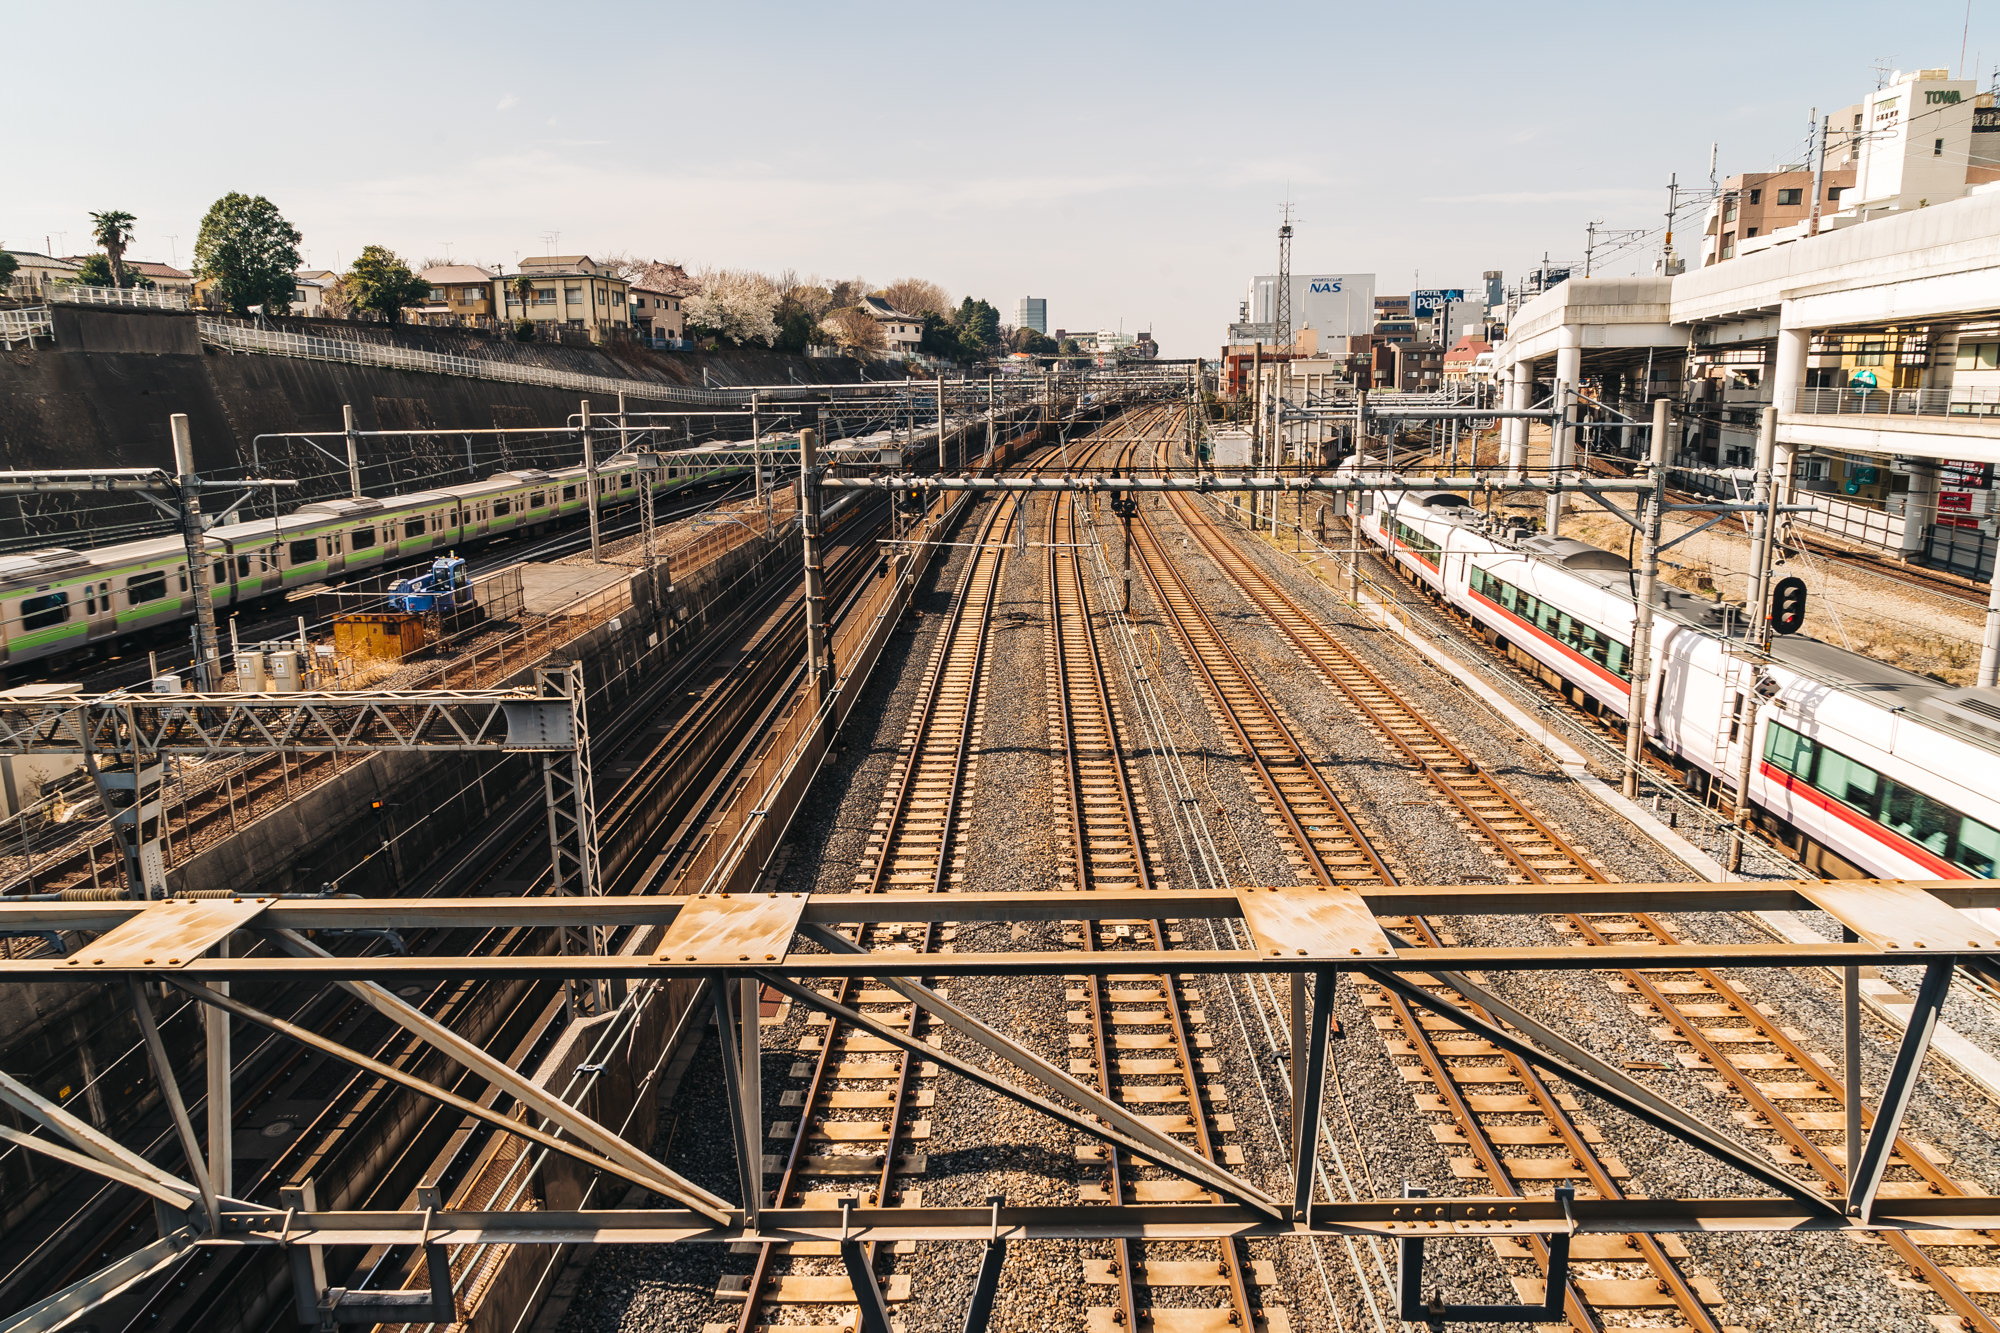 Train tracks at Nippori Station